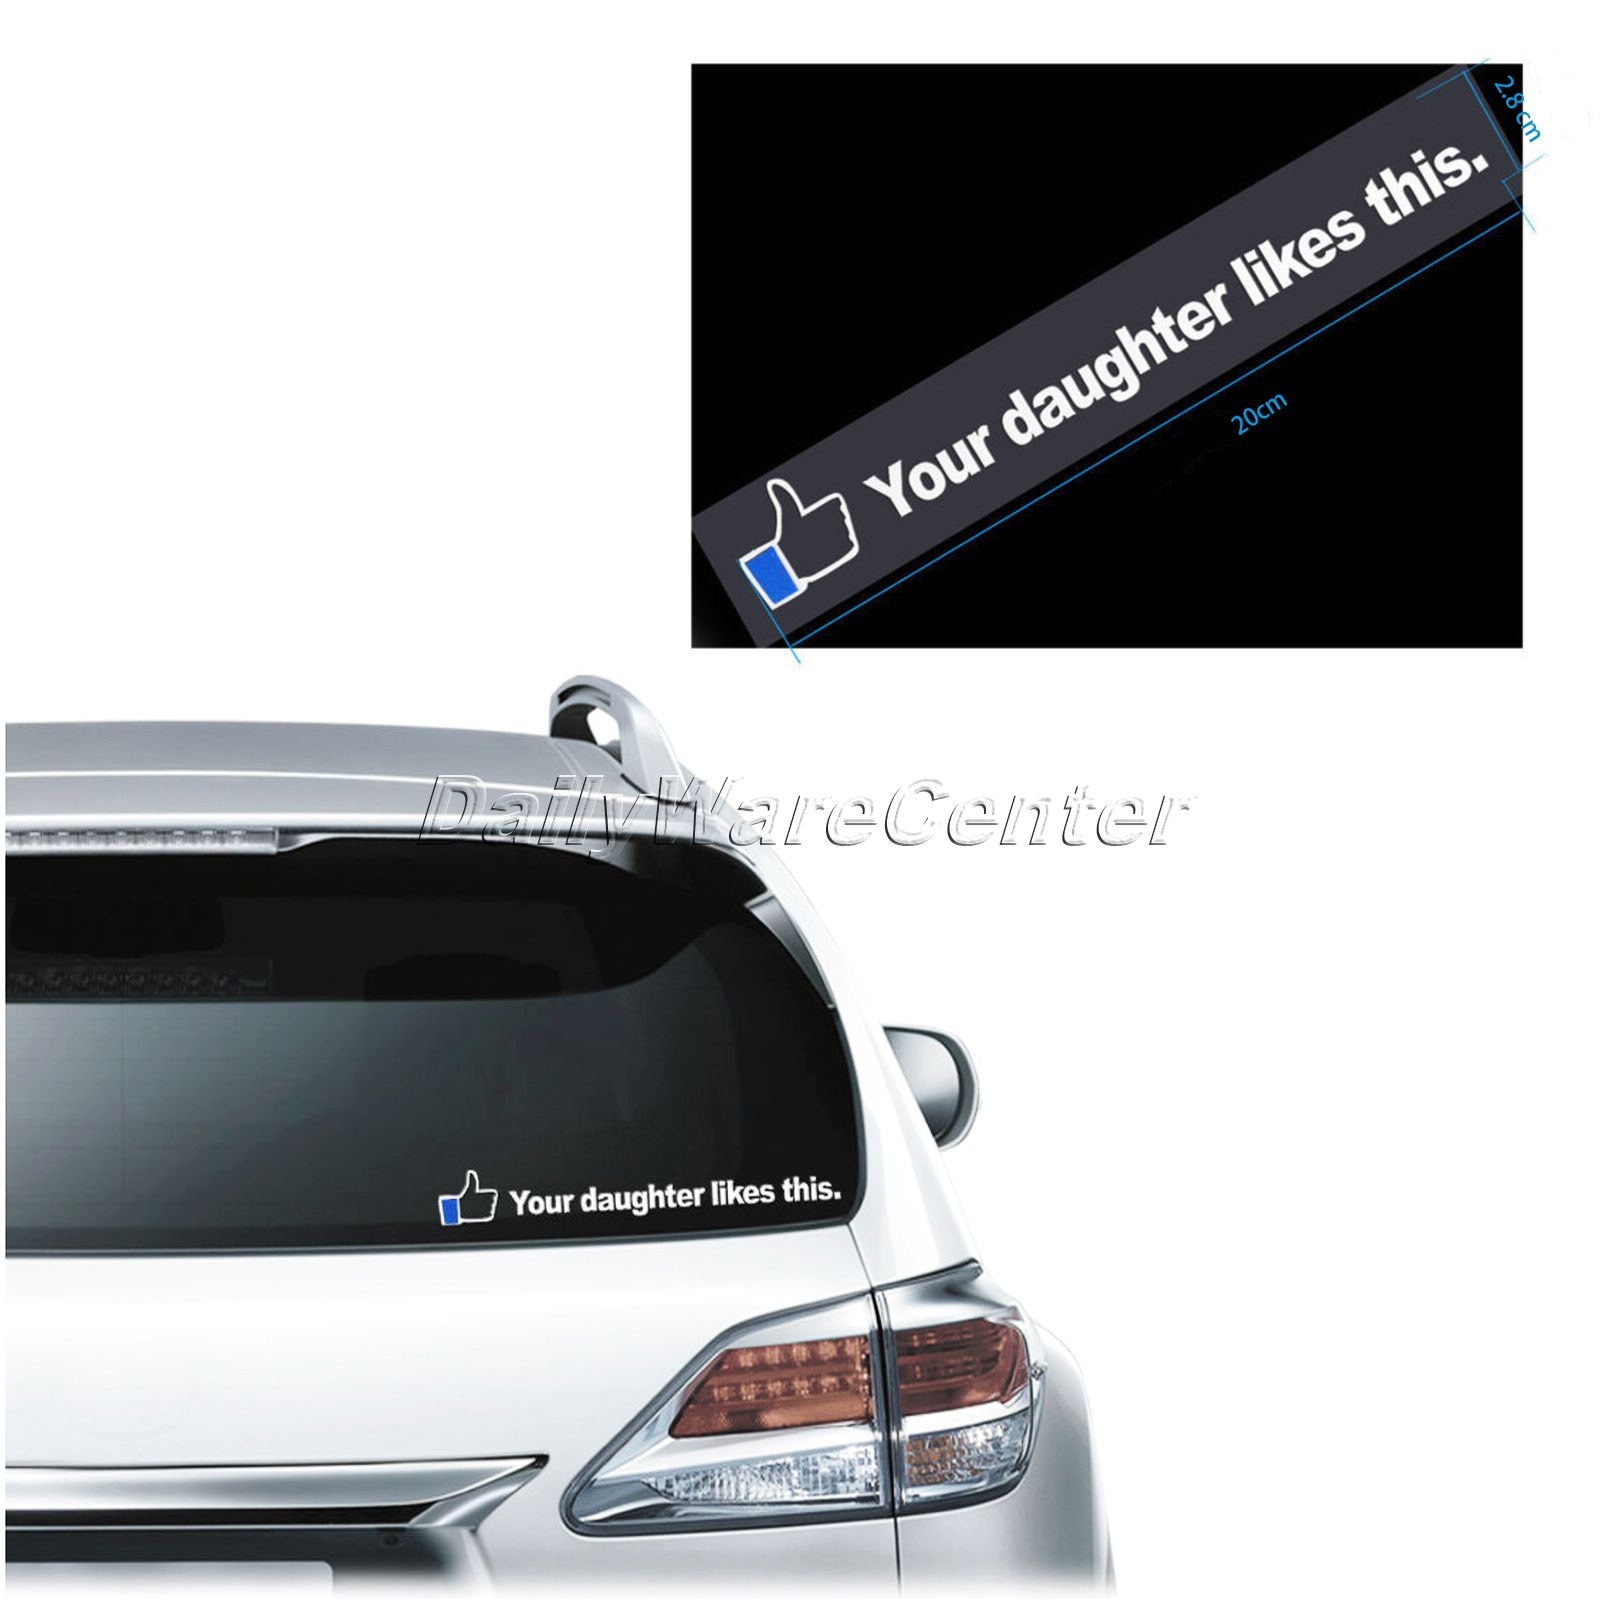 Design your car sticker - Waterproof Car Styling 3d Carbon Your Daughter Like This Car Sticker Decals Car Accessories Stickers On